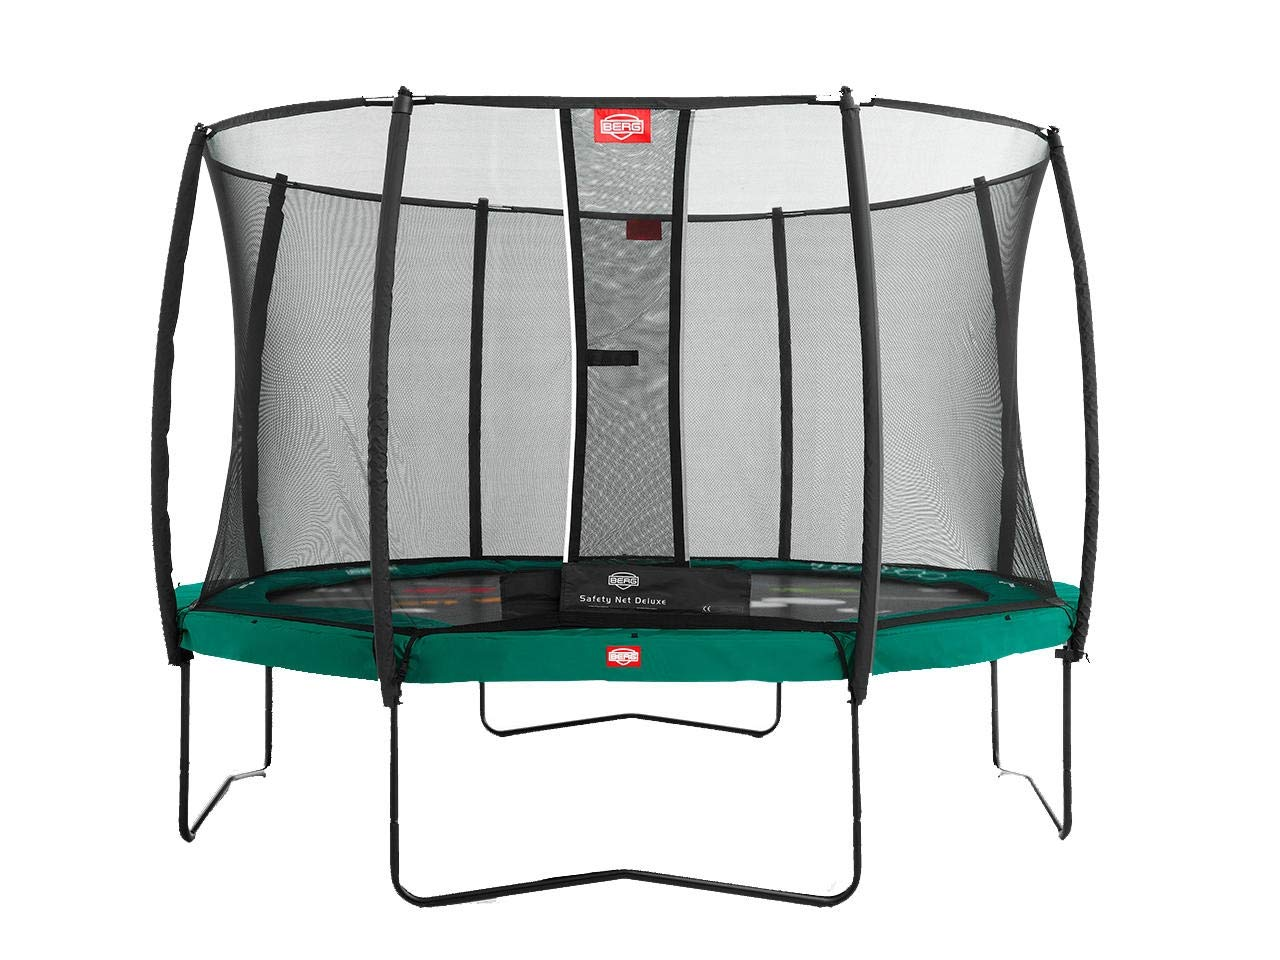 Berg Champion 430 Tattoo 14ft Trampoline+ Safety Net Deluxe Grün